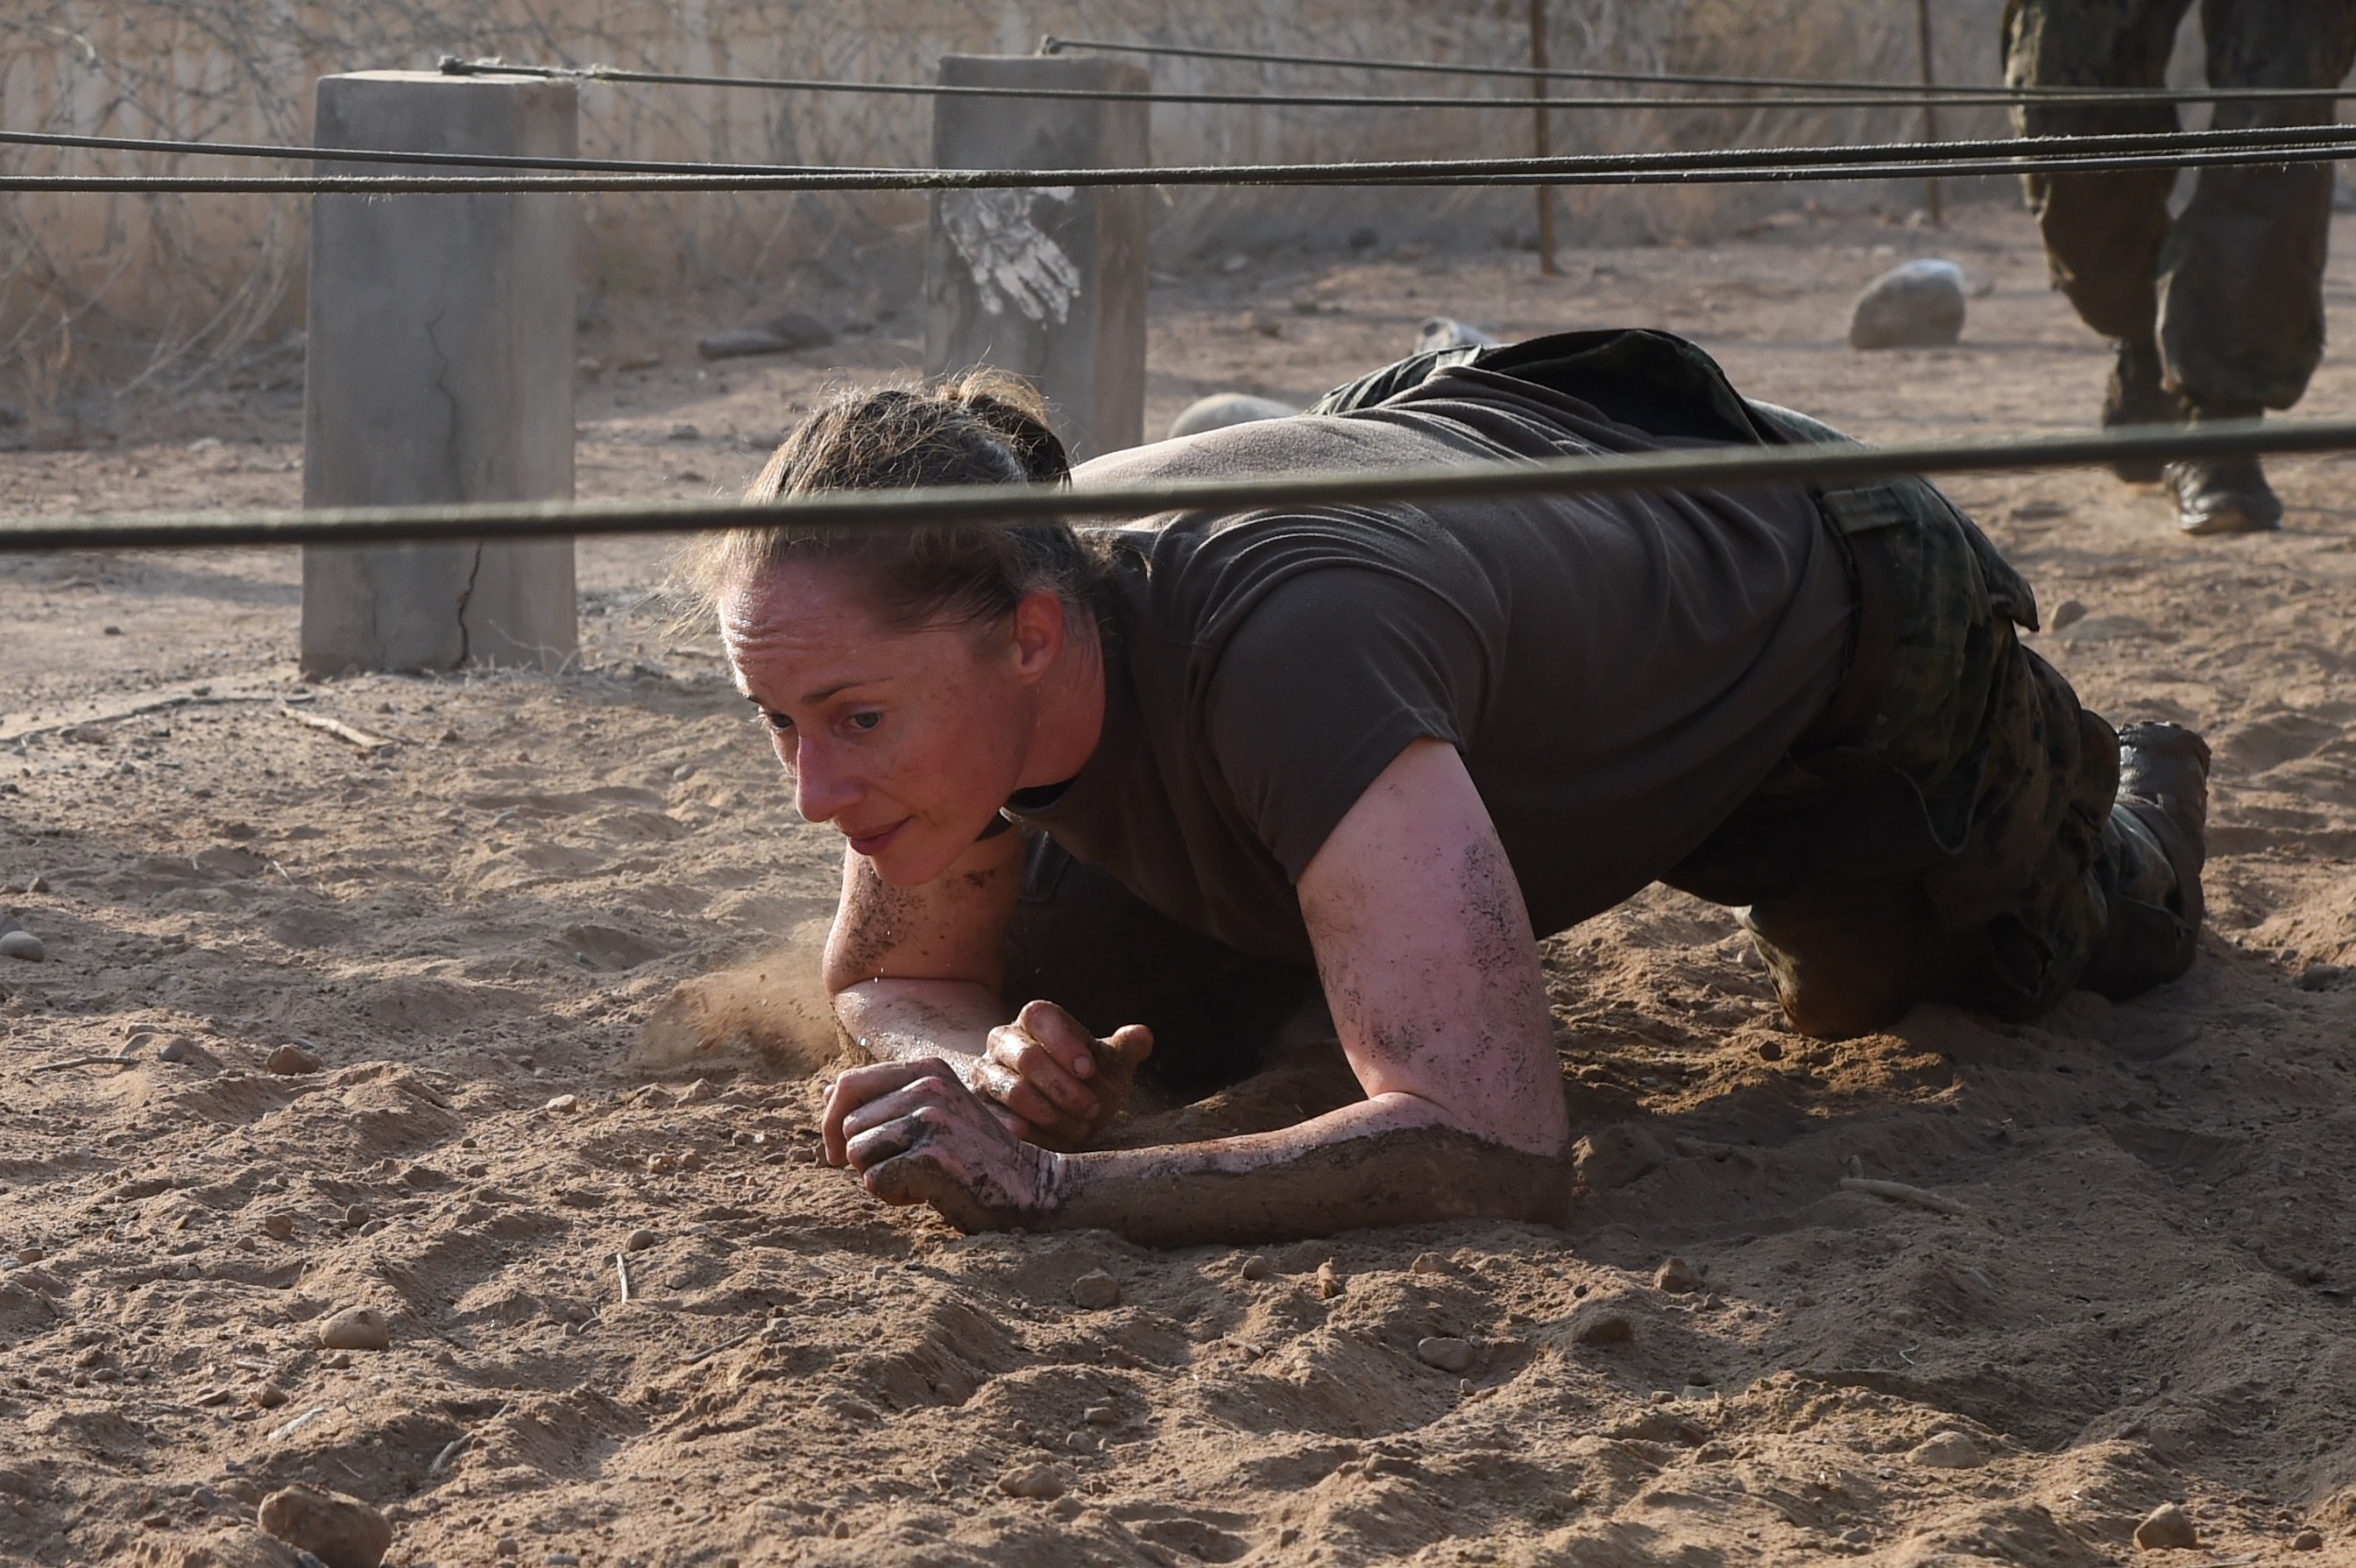 U.S. Navy Lt. Cmdr. Brighid Clark, Combined Joint Task Force-Horn of Africa Civil Affairs, navigates a low-crawl obstacle during a mud run hosted by the French military, Nov. 6, 2016, in Djibouti, Djibouti. The event allowed coalition forces from French, Japanese, and American teams to interact and build camaraderie while navigating a five kilometer course. The French 5th Marine Regiment team took first place. (U.S. Air Force photo by Staff Sgt. Penny Snoozy)